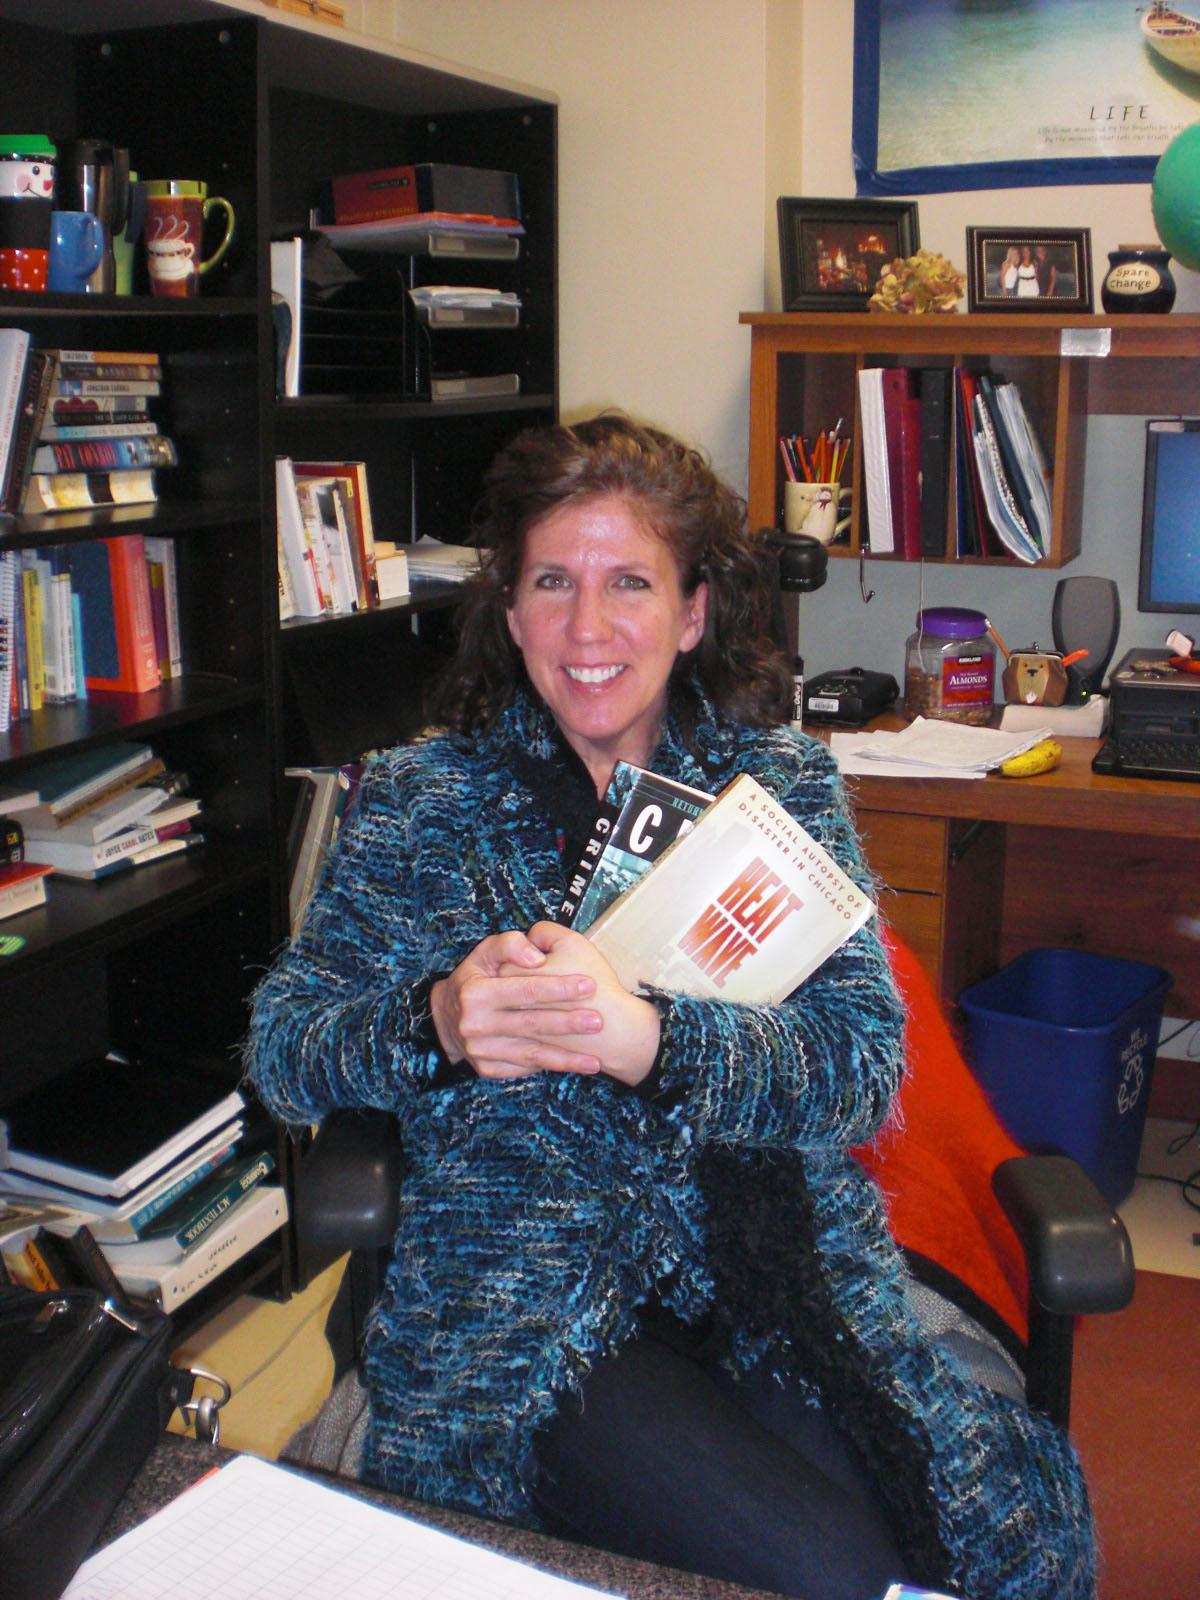 Kathy Meyer holds textbooks for next year's new classes (M. Wilson).